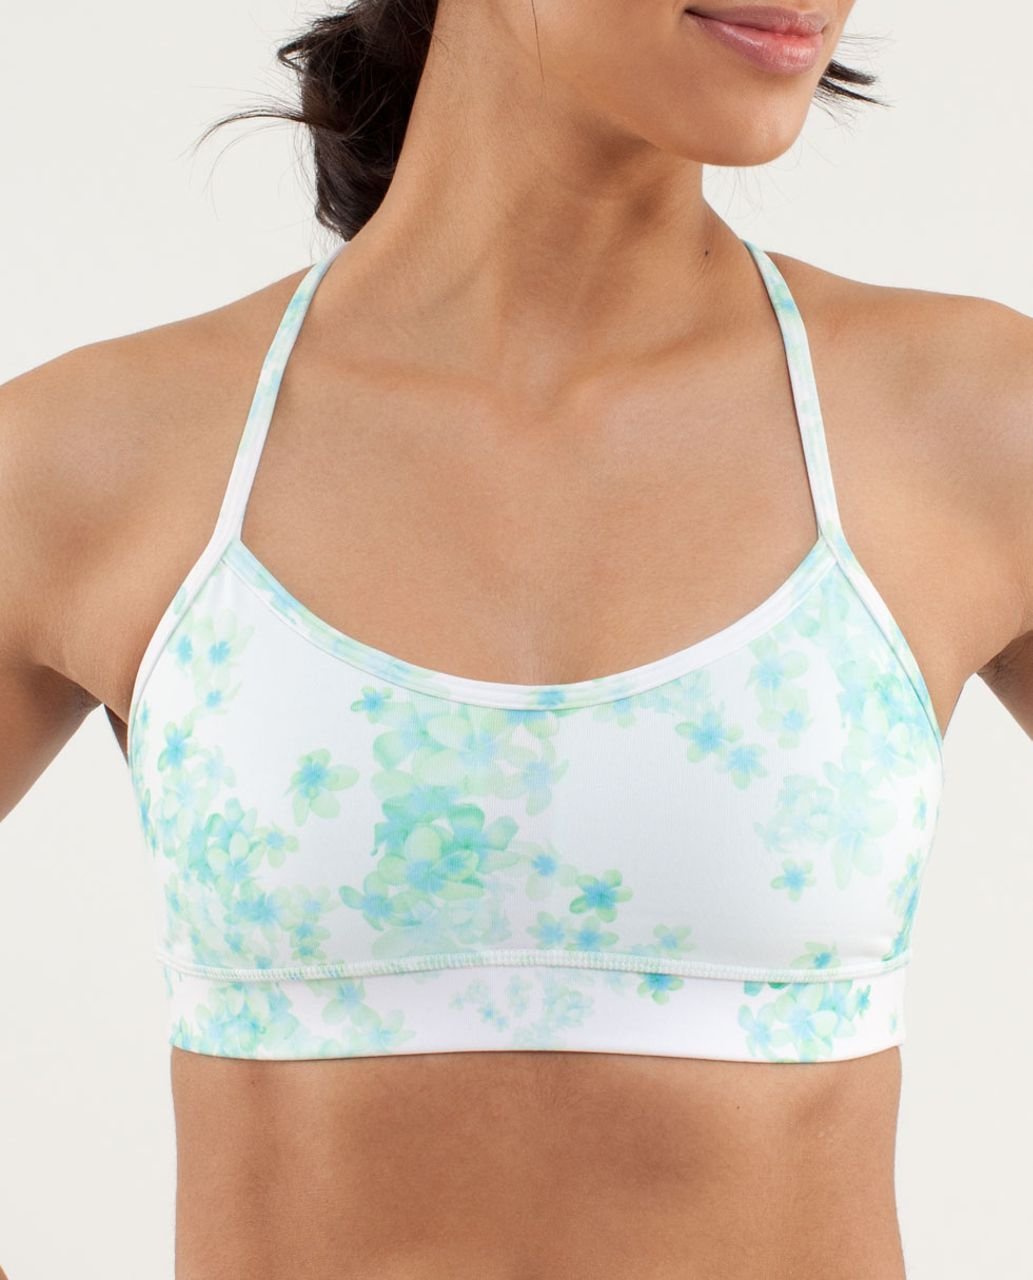 Lululemon Flow Y Bra IV - Frangipani Very Green / White